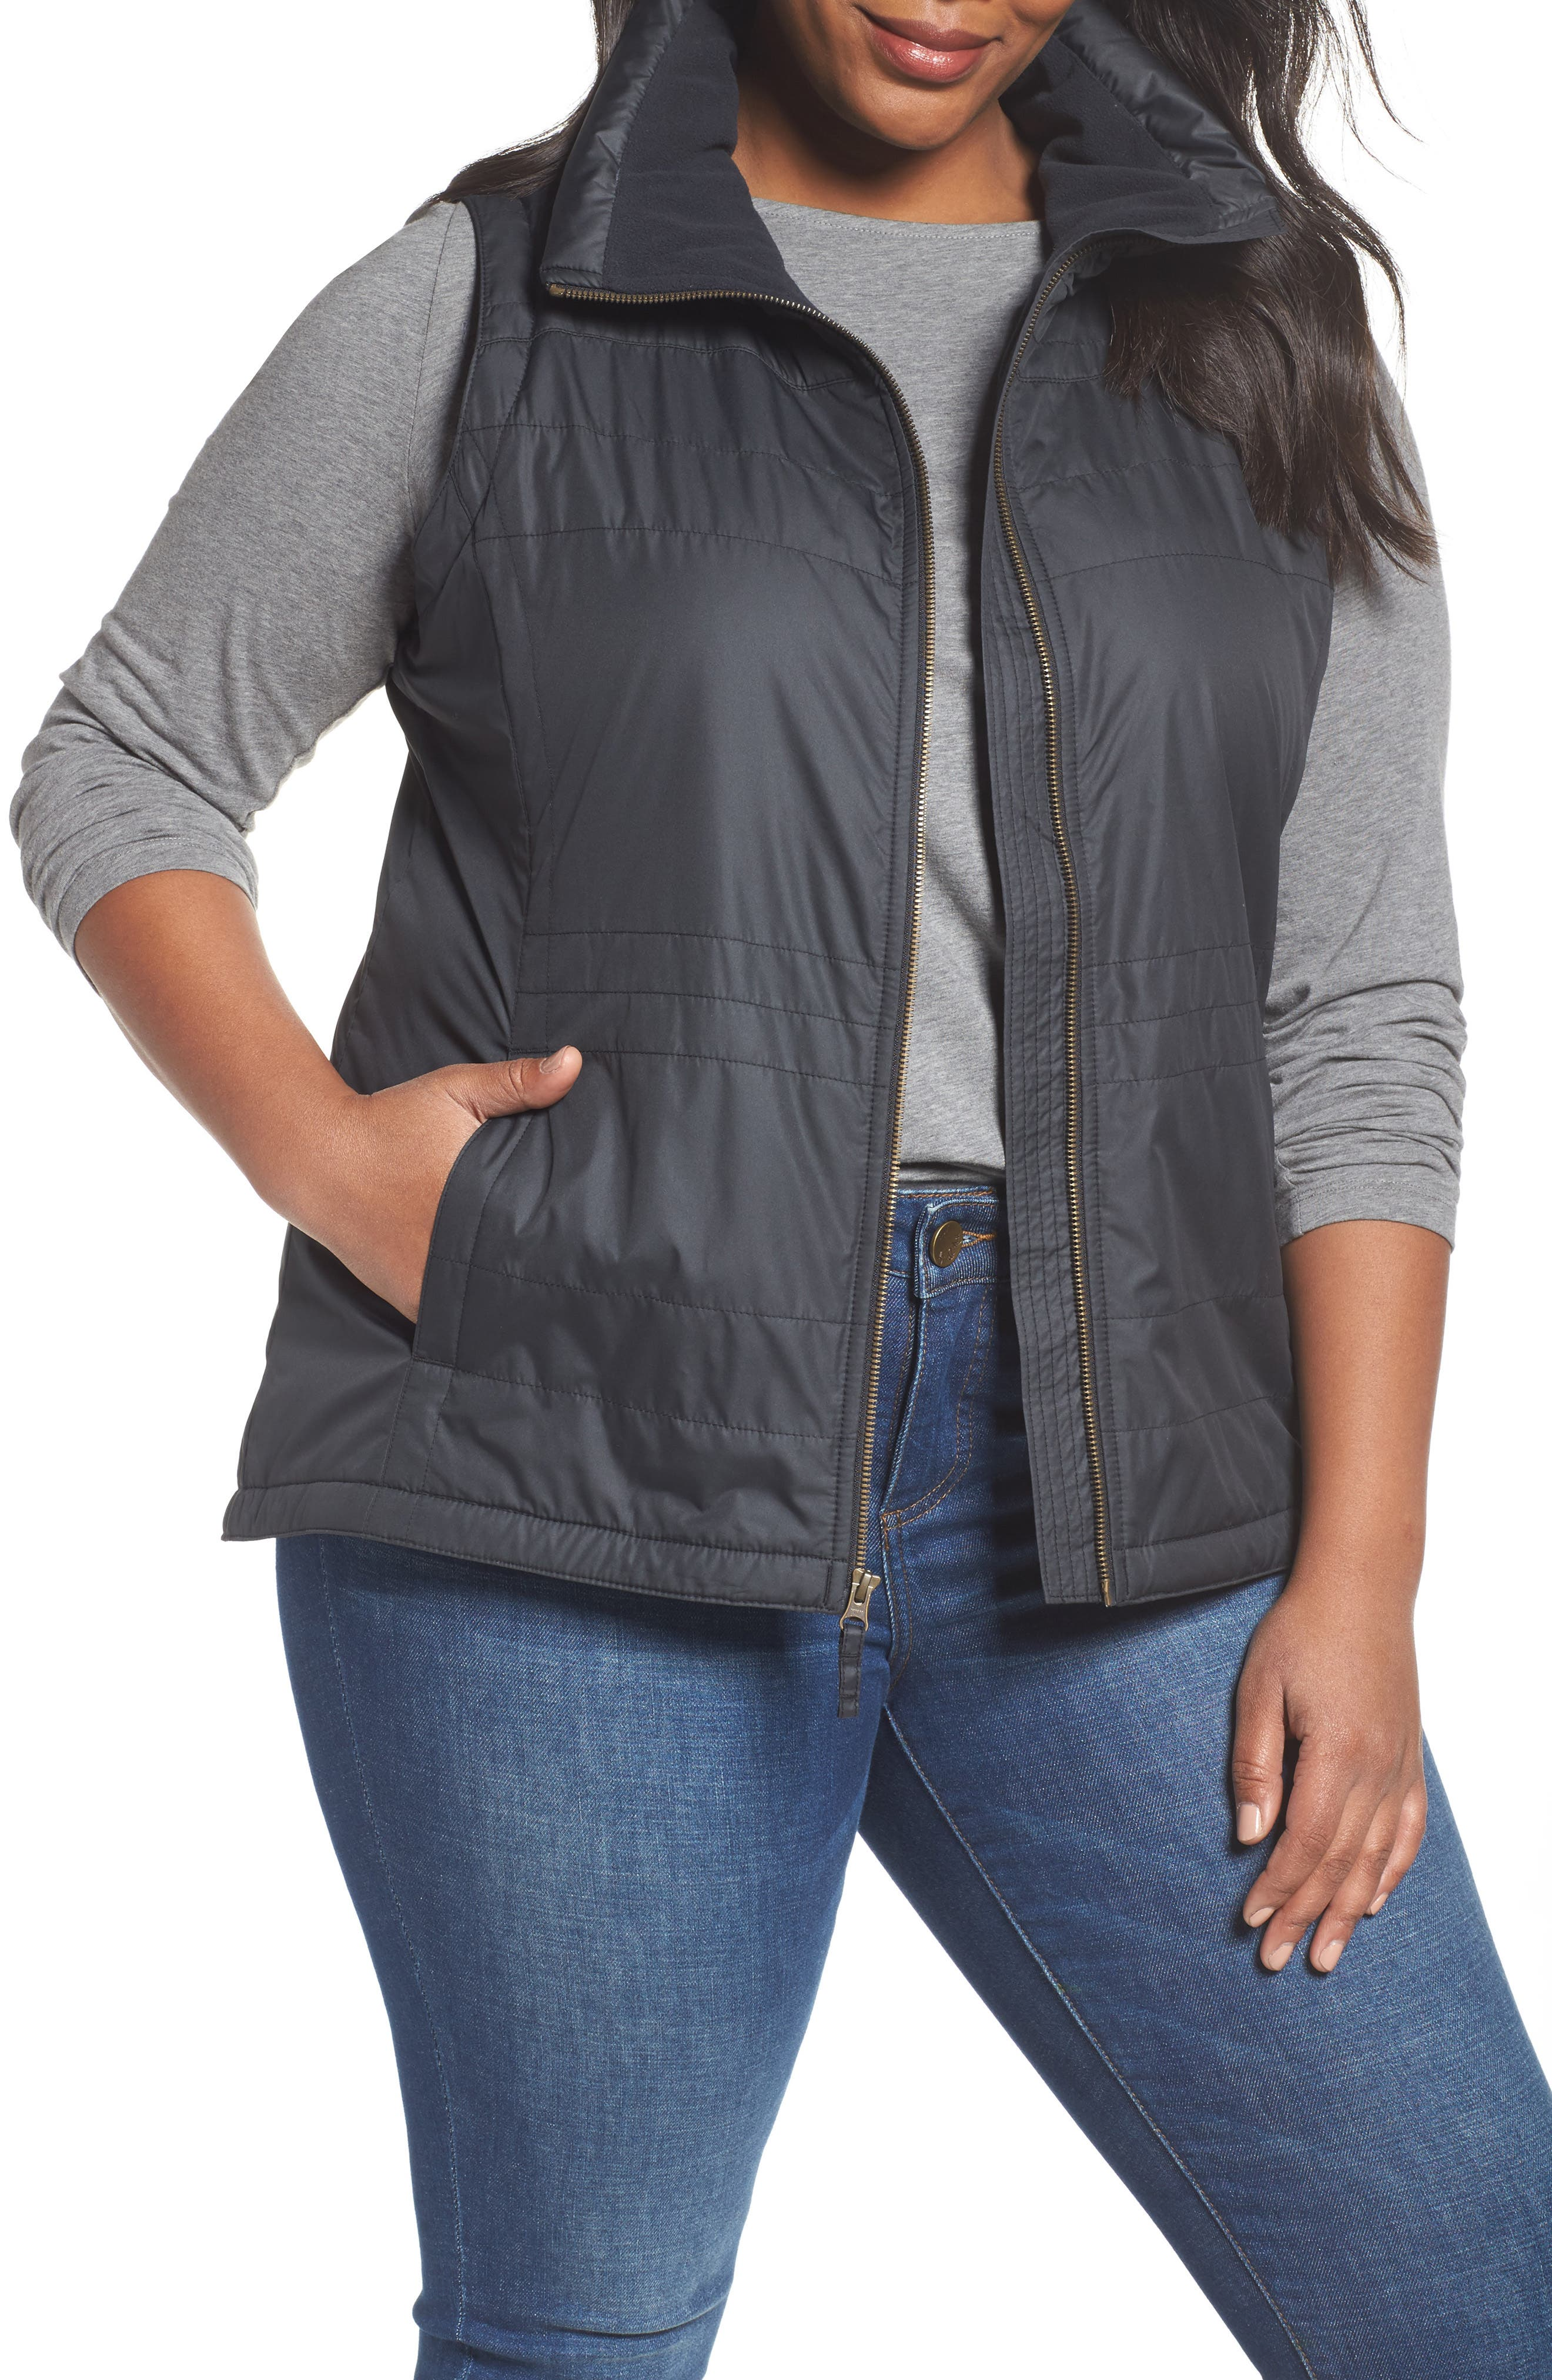 Shining Light II Quilted Vest,                             Main thumbnail 1, color,                             010